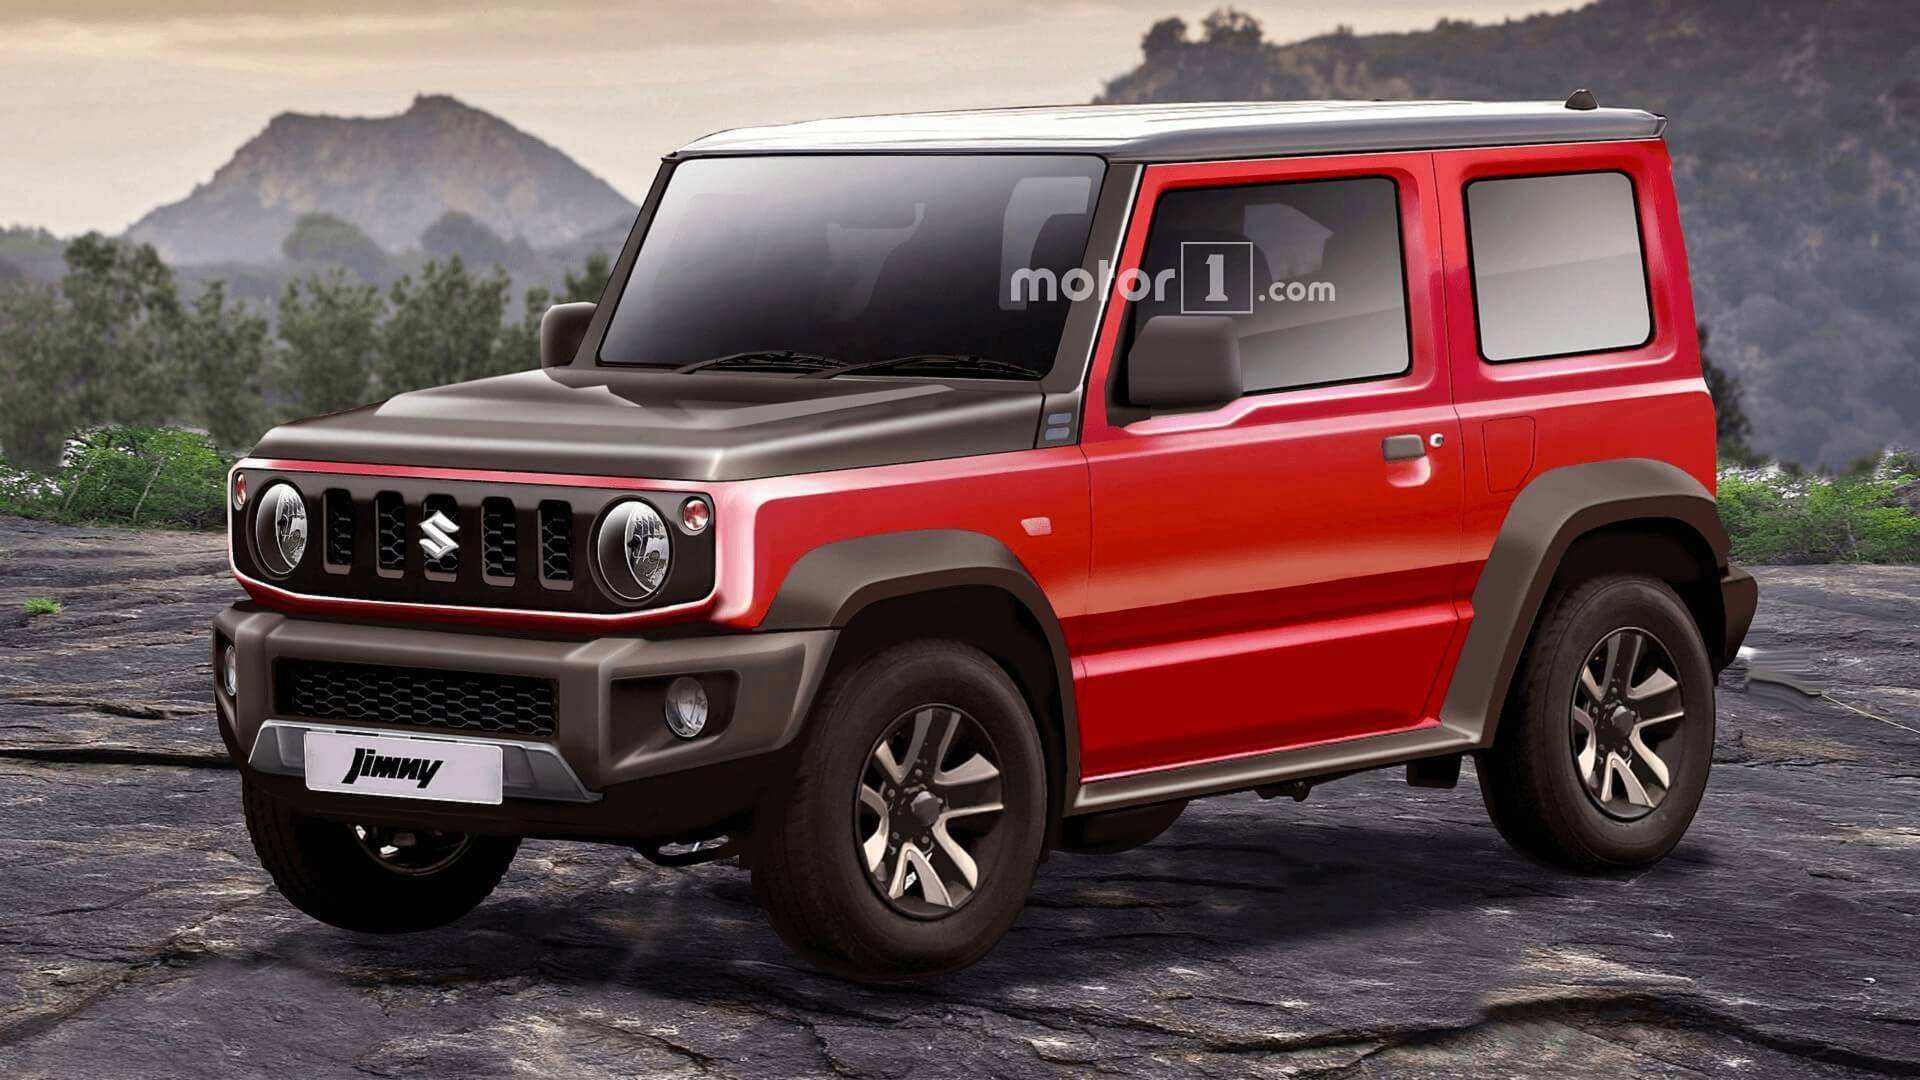 47 New 2019 Suzuki Jimny Model Prices